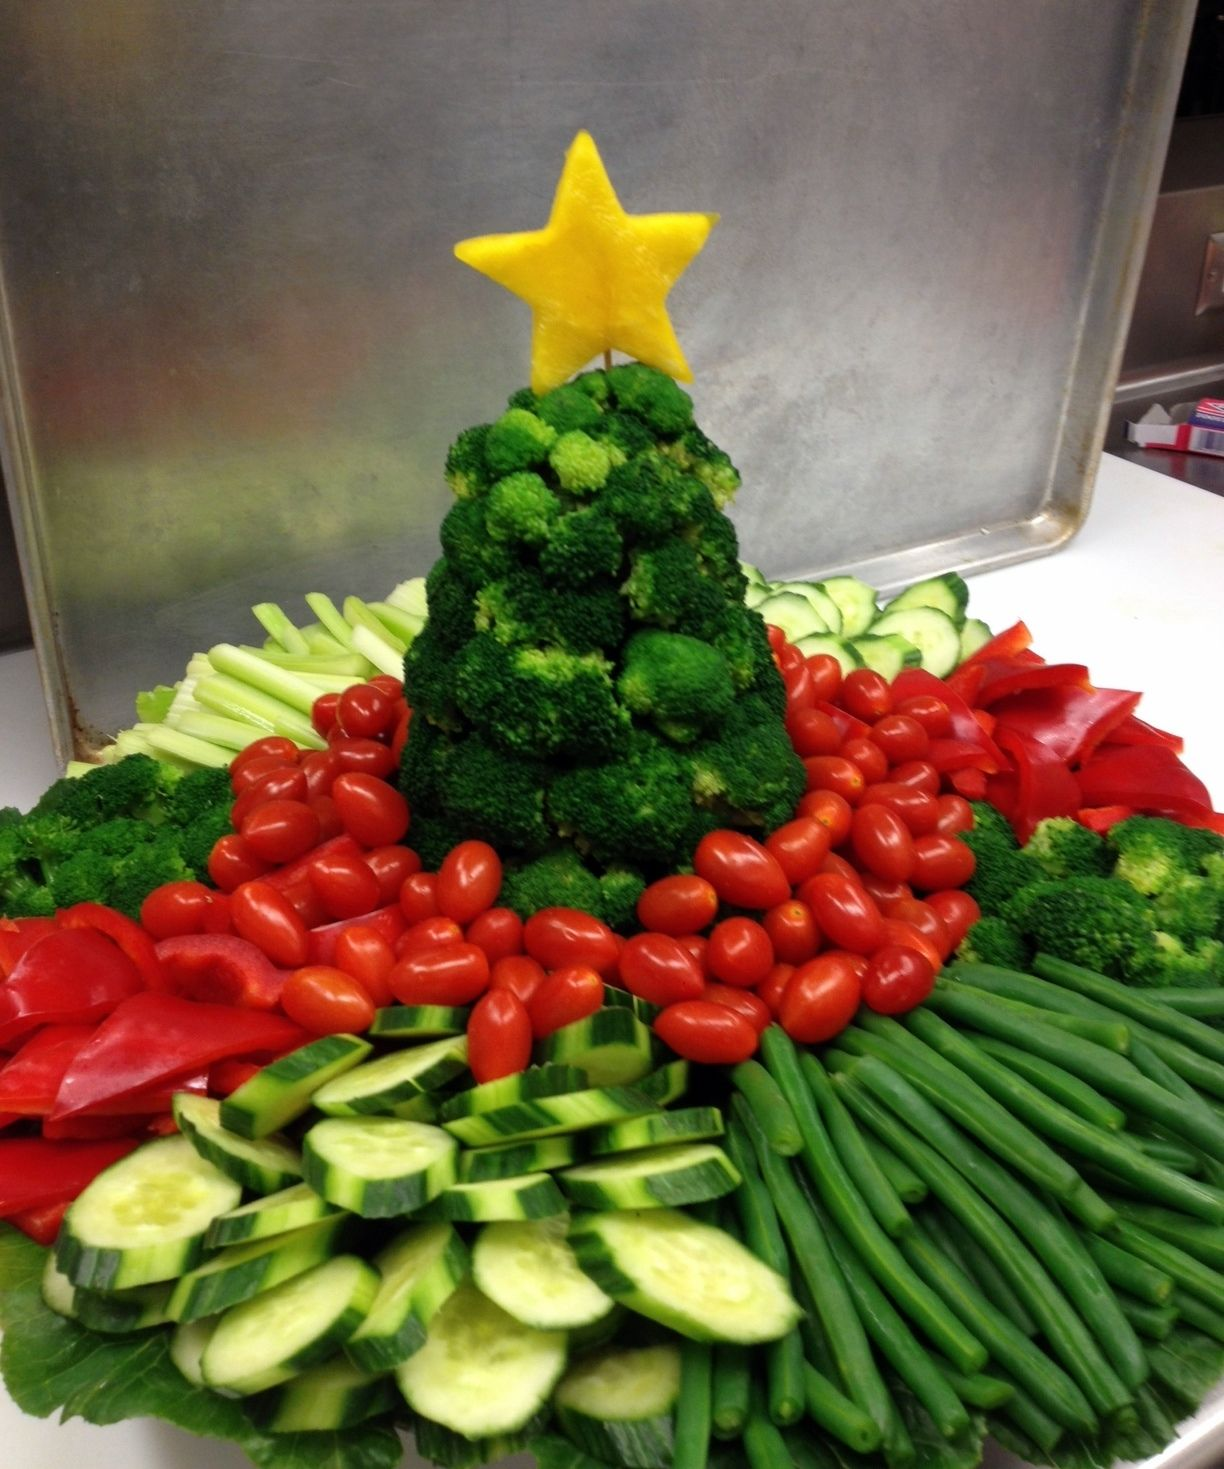 Christmas Veggie Tray.Veggie Tray For Farmer S Market Party Christmas Holiday